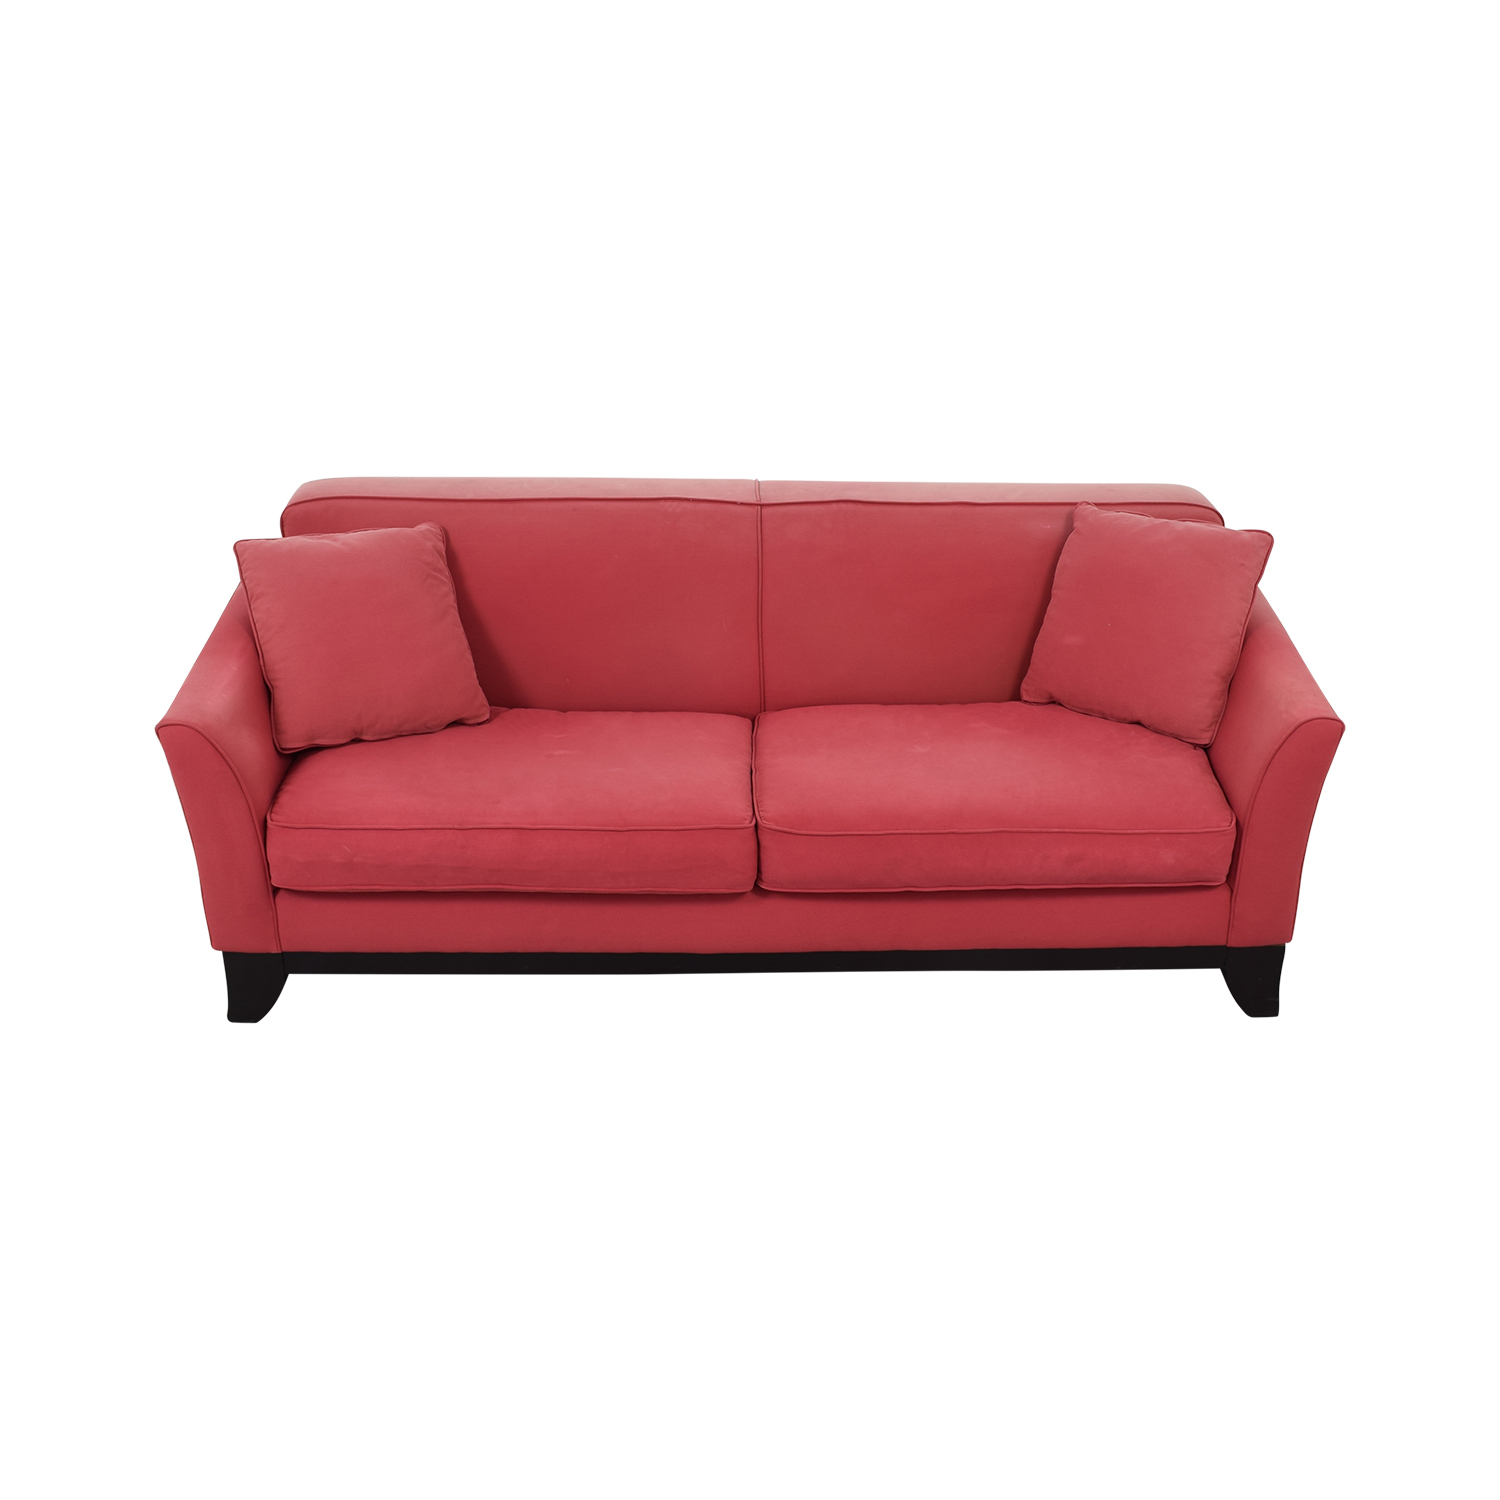 Pottery Barn Cardinal Red Two-Cushion Sofa / Classic Sofas